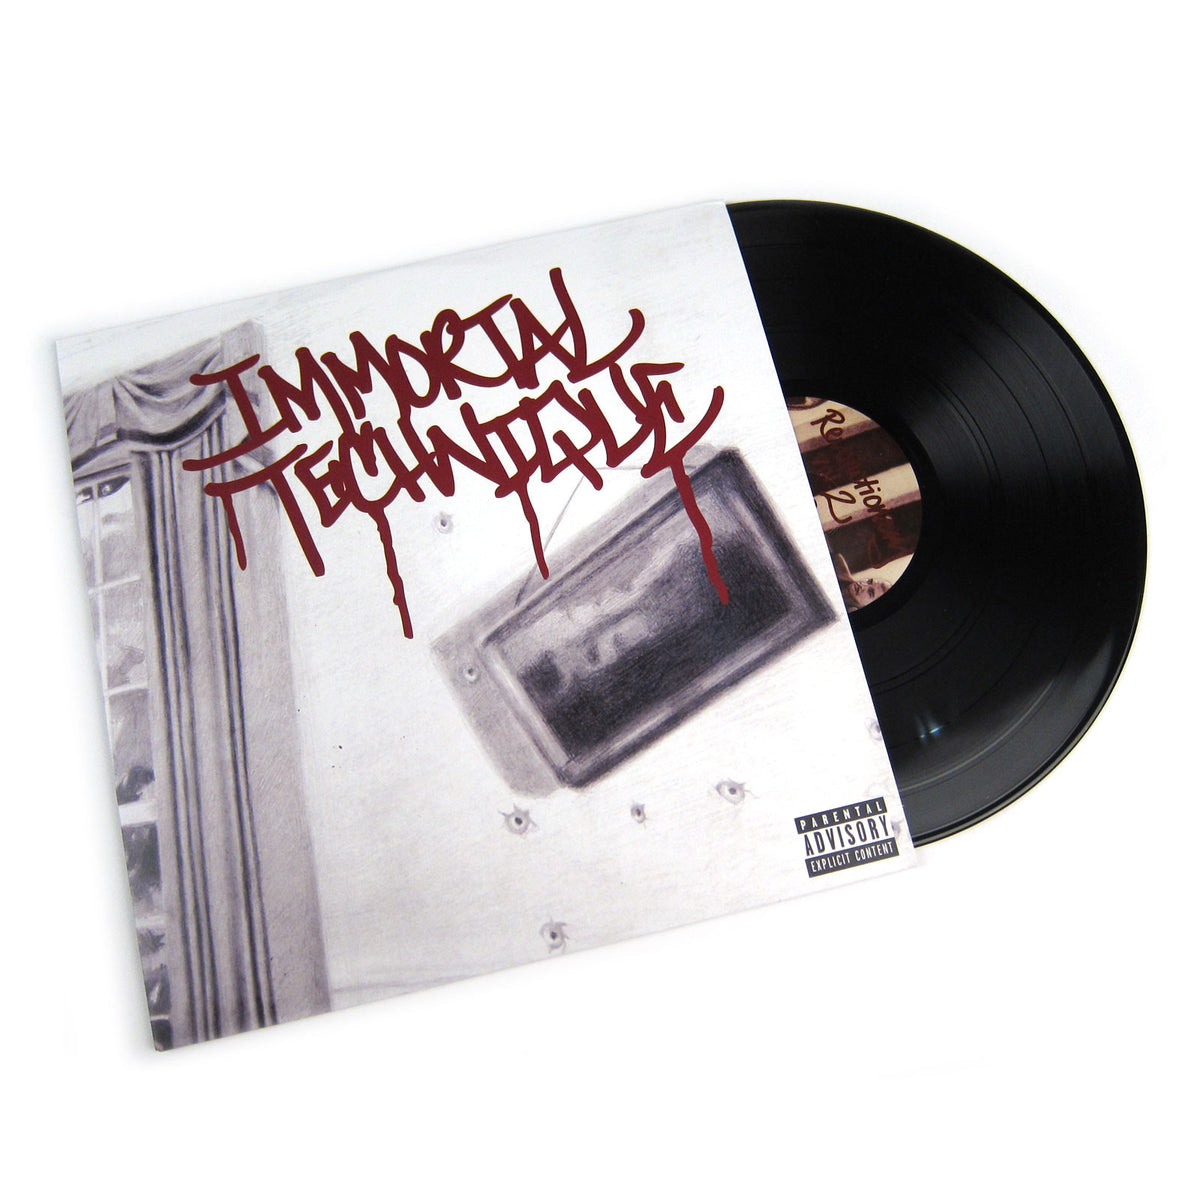 Immortal Technique: Revolutionary Vol. 2 Vinyl 2LP